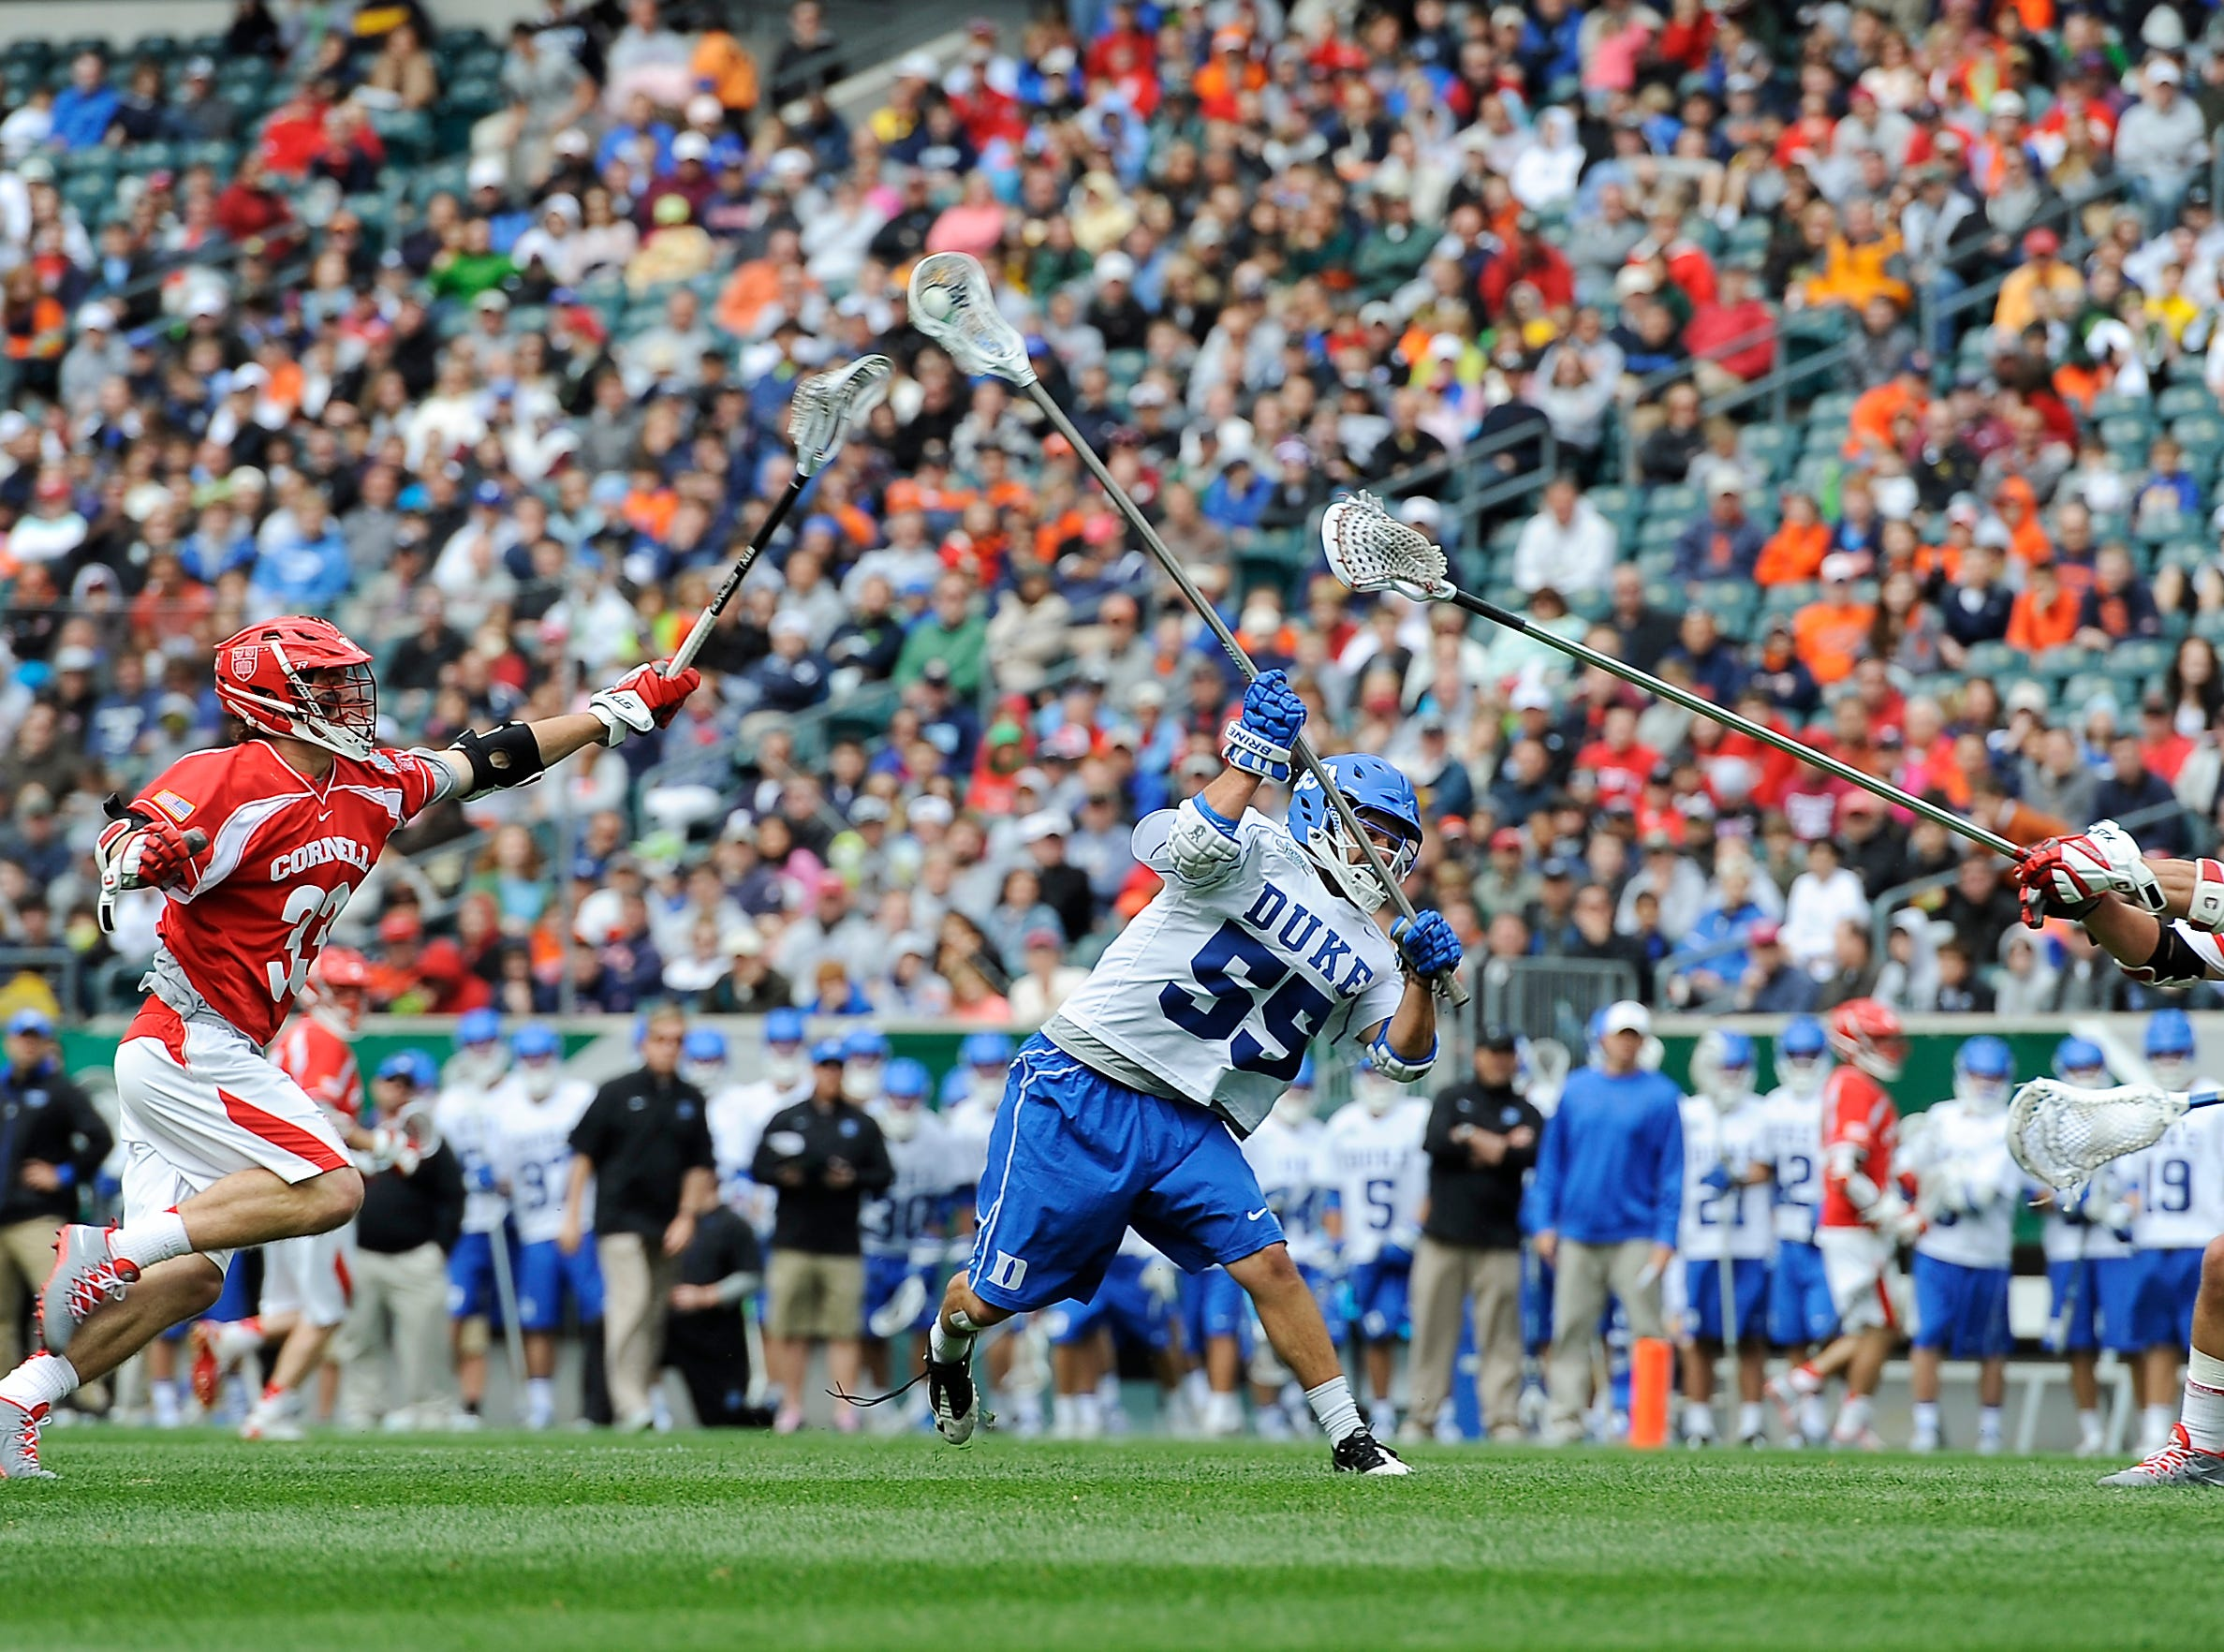 Duke's Bill Conners (55) takes a shots on goal and score while Cornell's Connor Buczek (33) defends during the first half of an NCAA division 1 semifinal lacrosse game on Saturday, May 25, 2013, in Philadelphia.